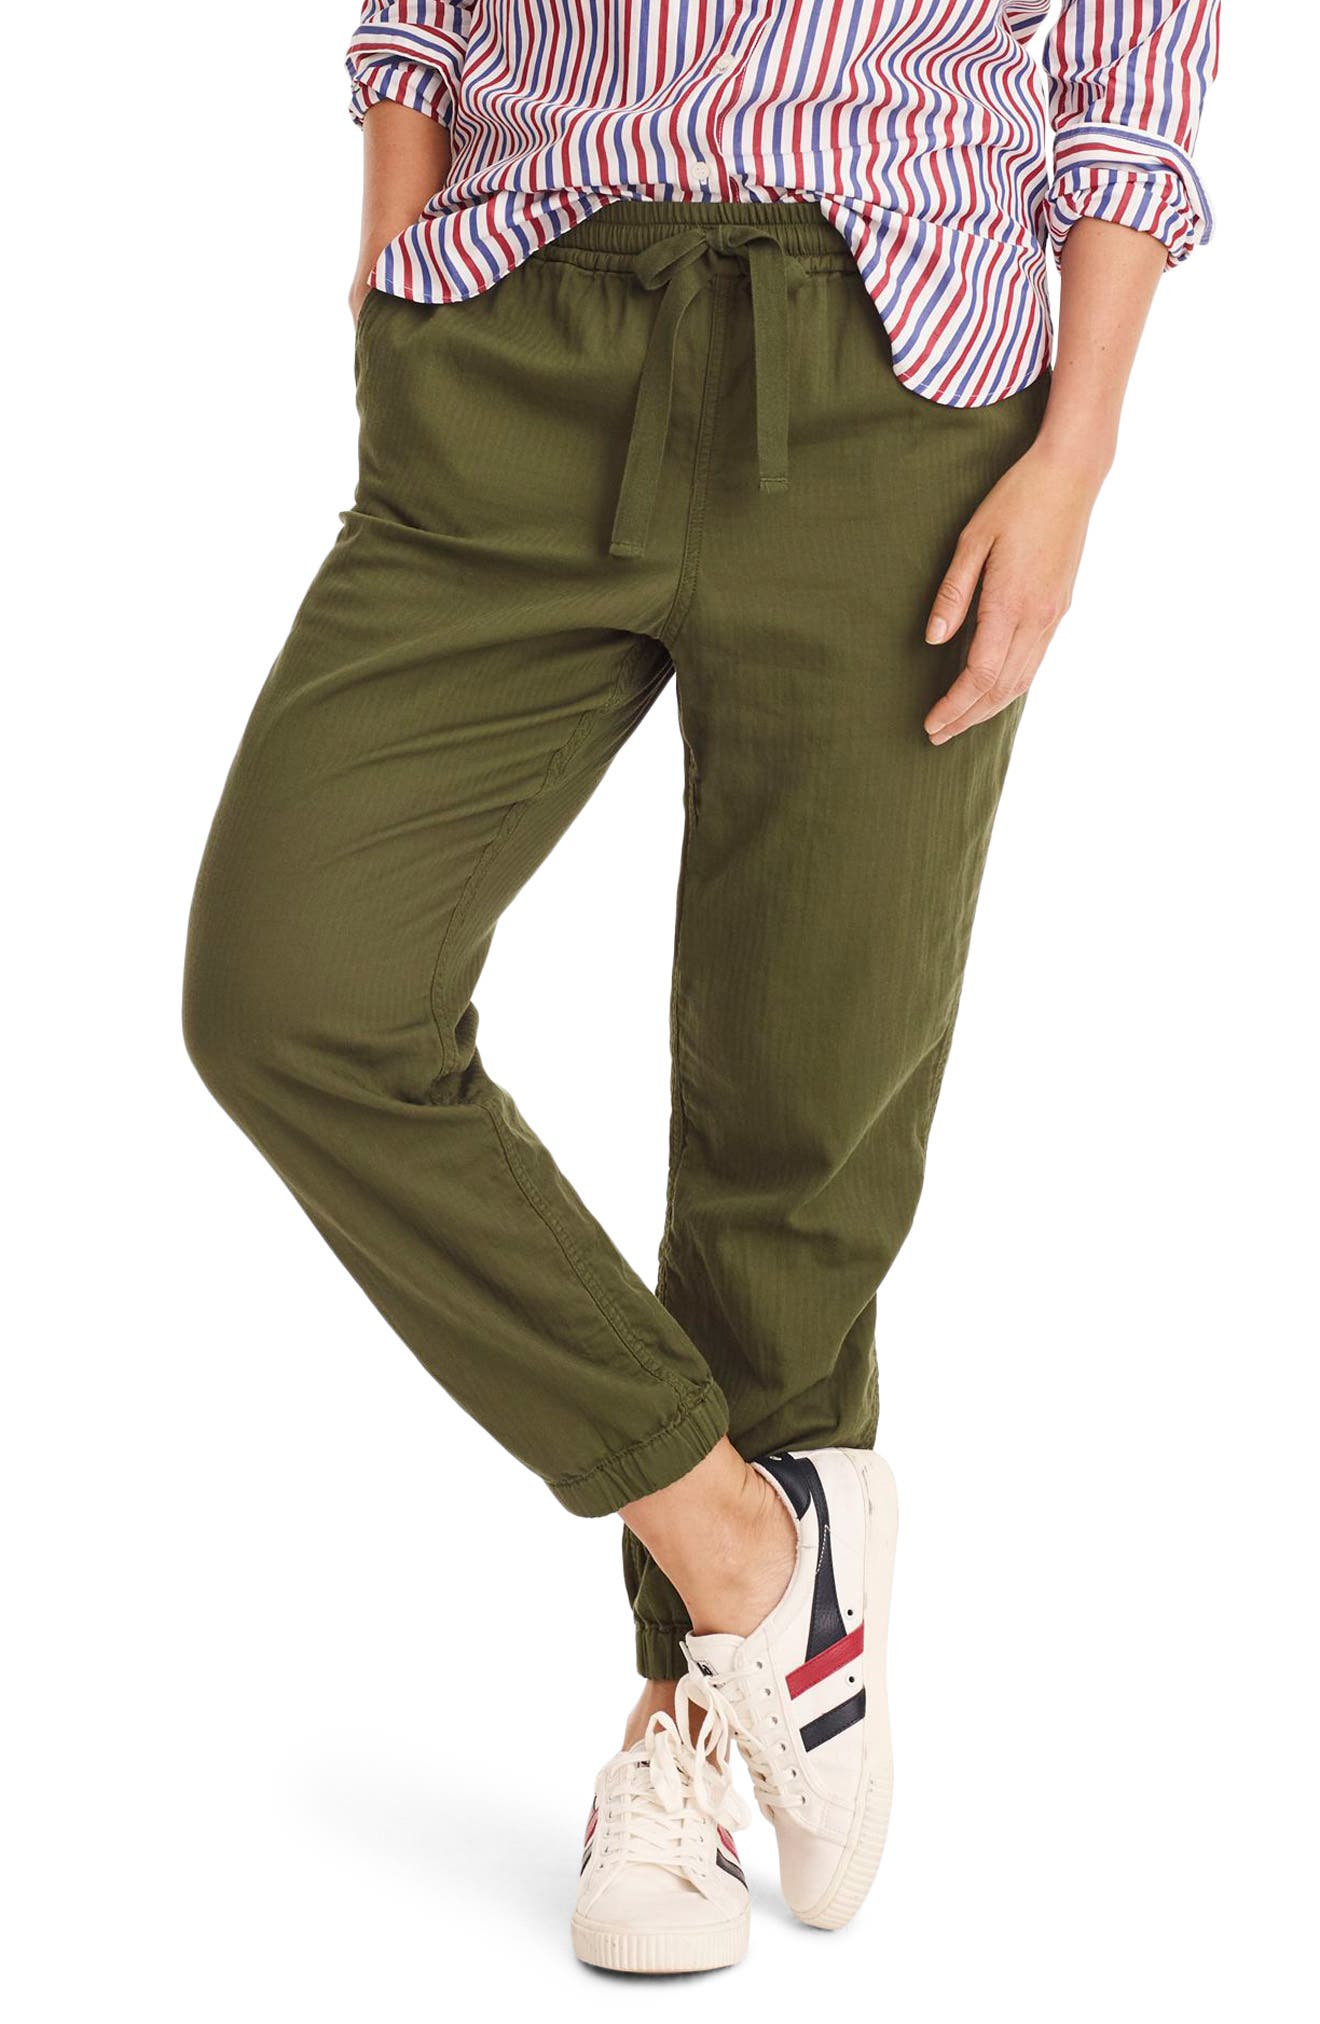 J.crew Galicia Pull-On Cargo Pants, Green